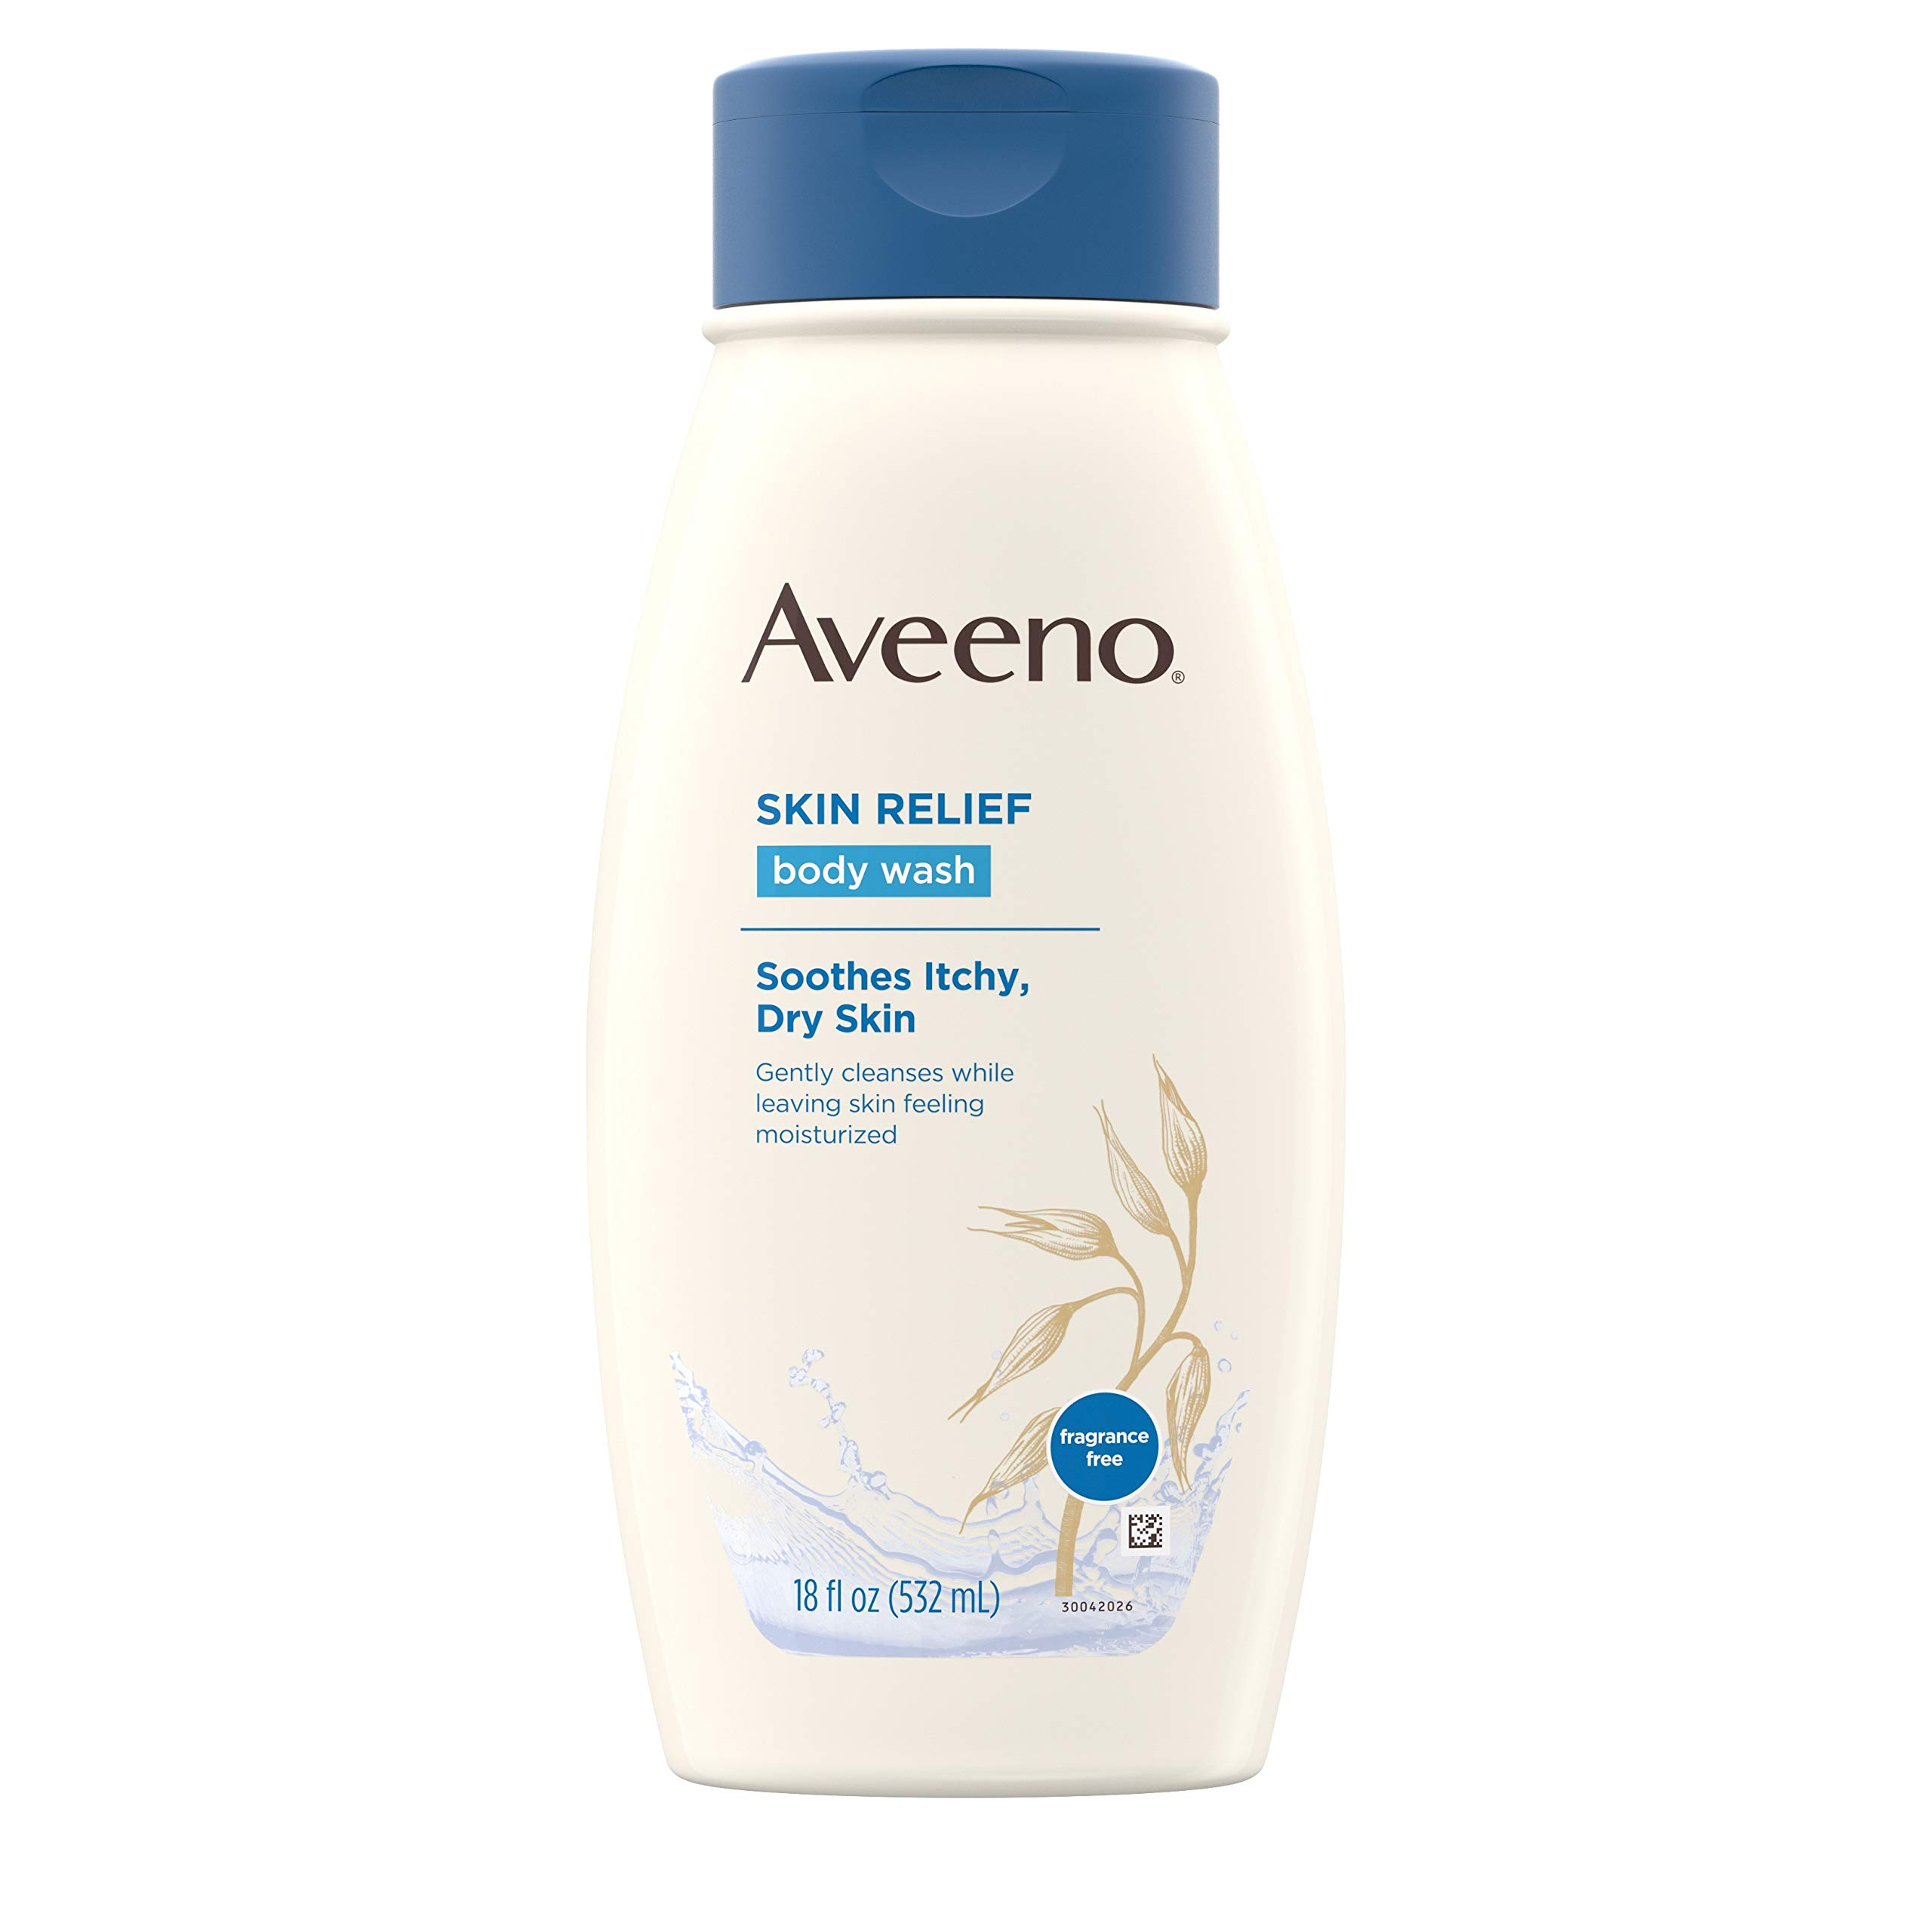 Aveeno Skin Relief Fragrance-Free Moisturizing Body Wash with Oat to Soothe Itchy, Dry Skin, Gentle & Unscented Daily Cream Body Cleanser, Soap-Free & Dye-Free for Sensitive Skin, 18 fl. Oz